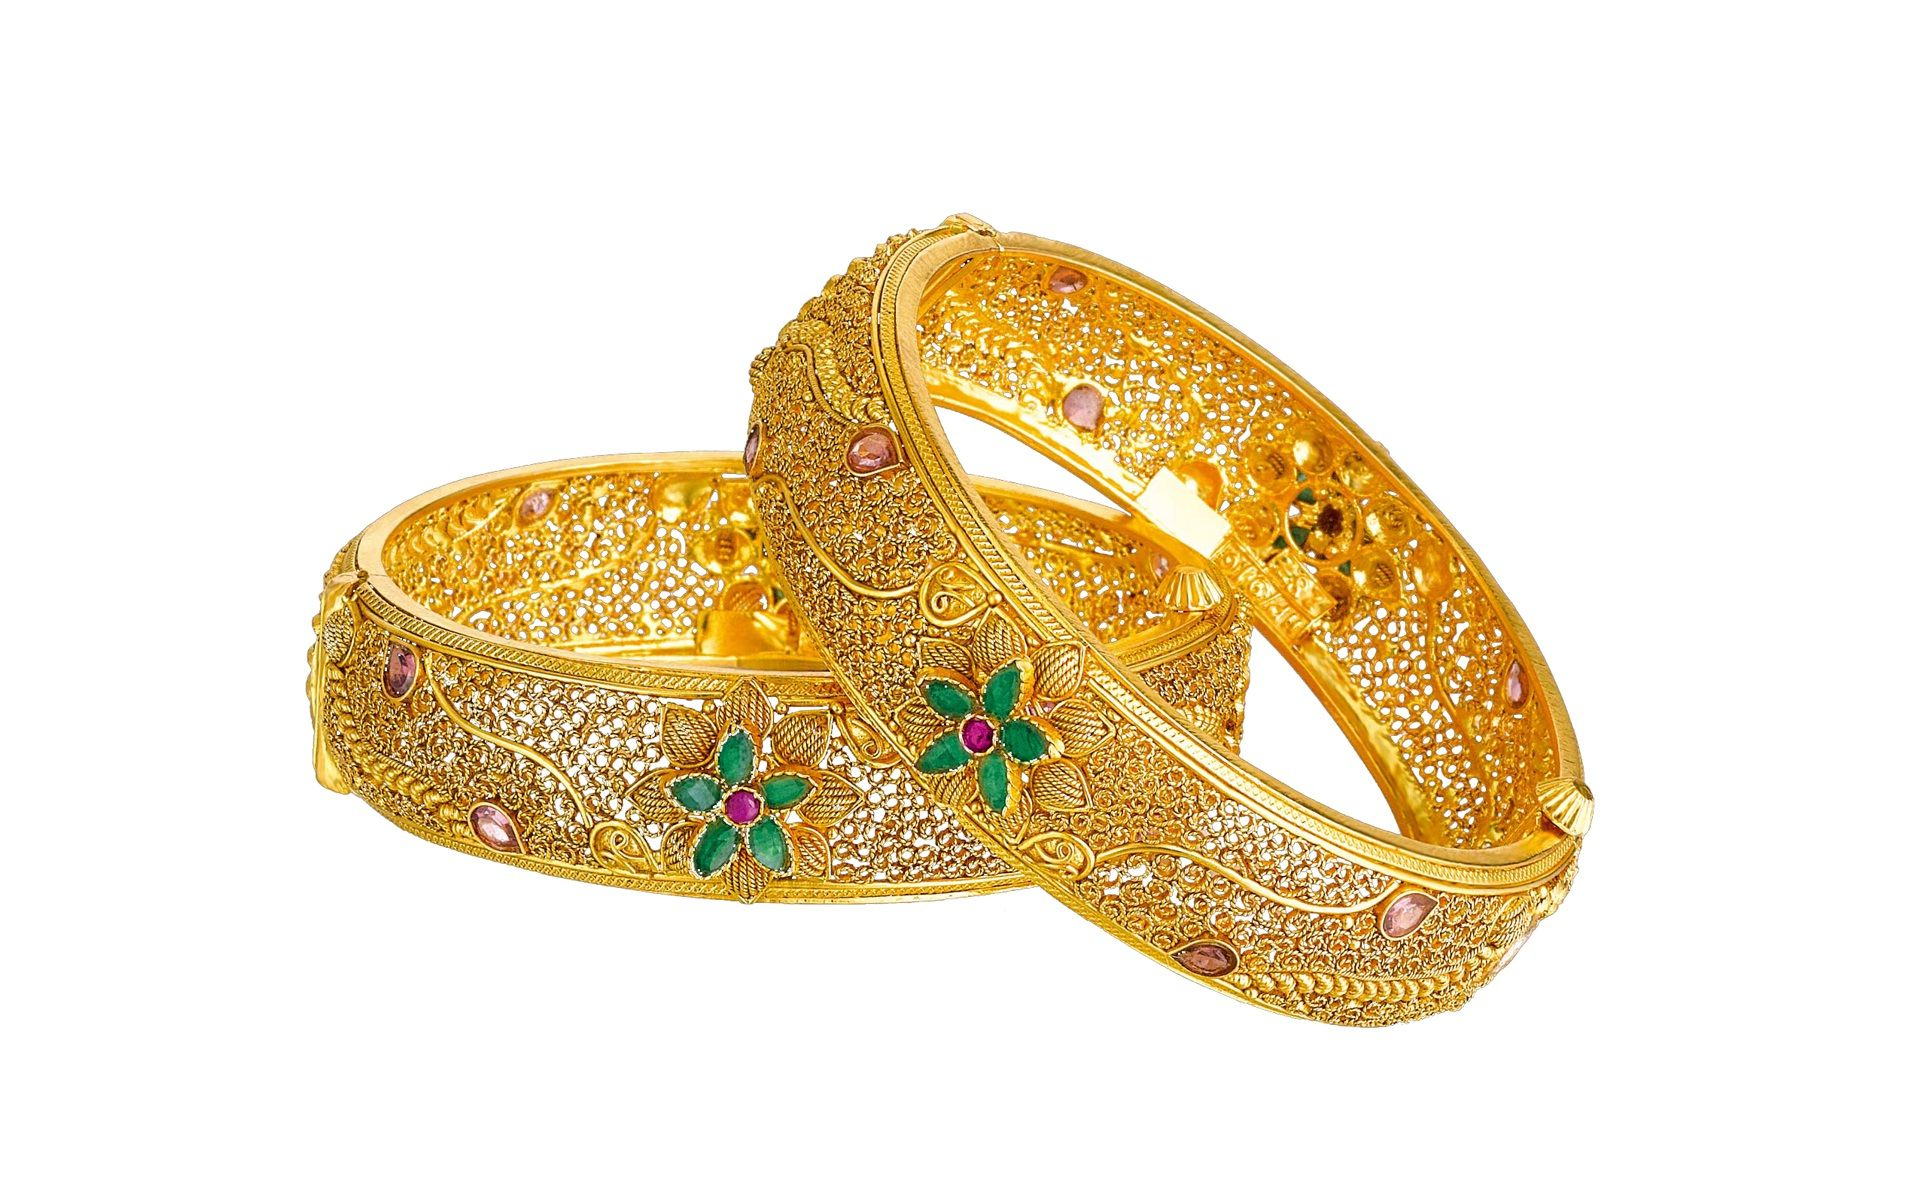 Golden Jewellery Bangle Hd Wallpapers In 2019 Gold Jewelry